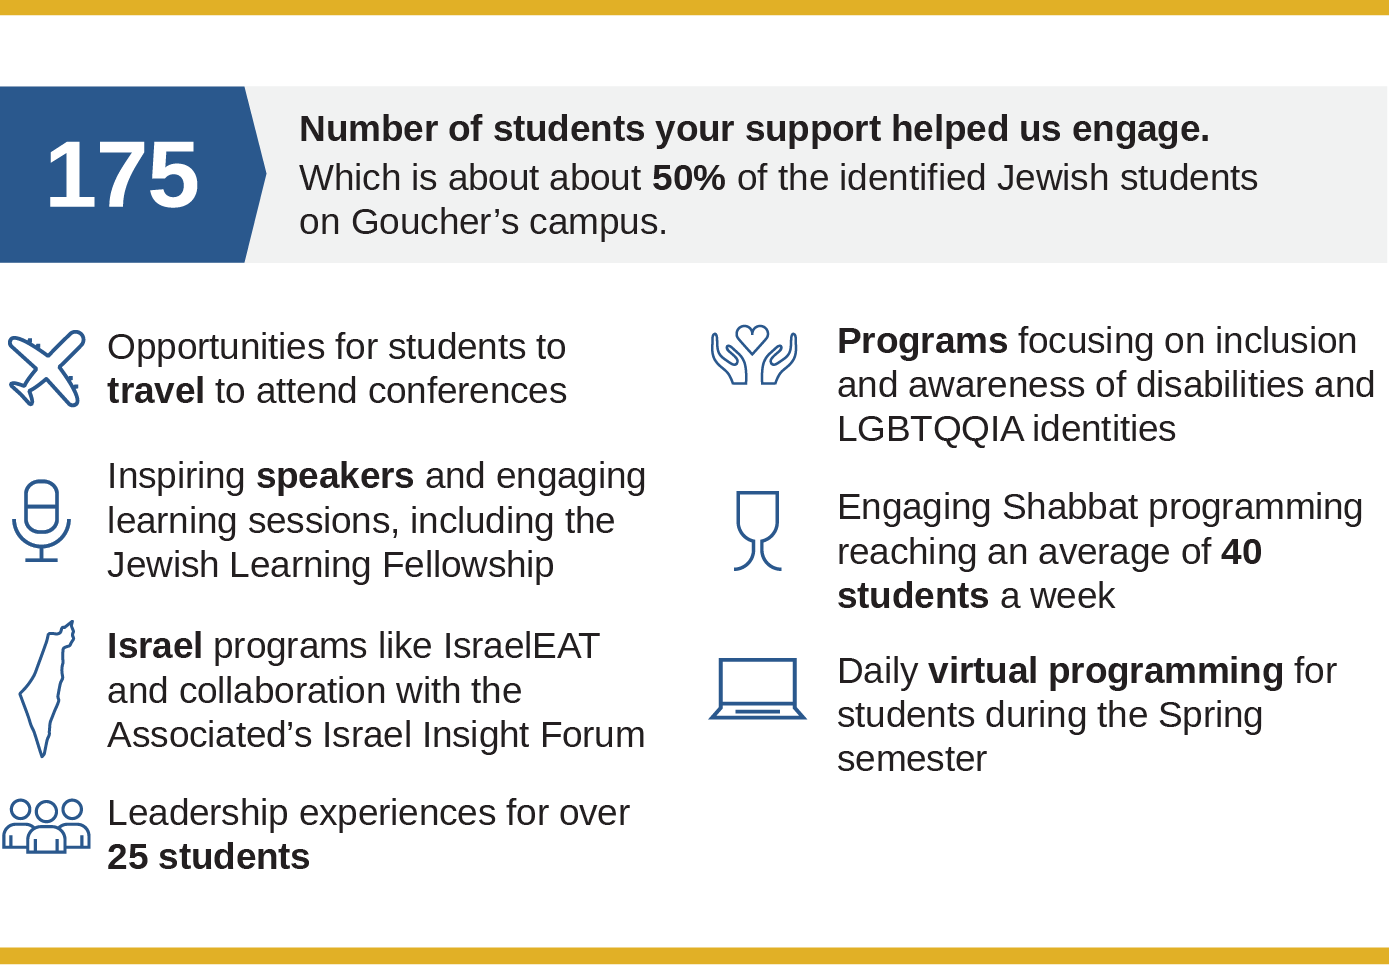 Number of students your support helped to engage